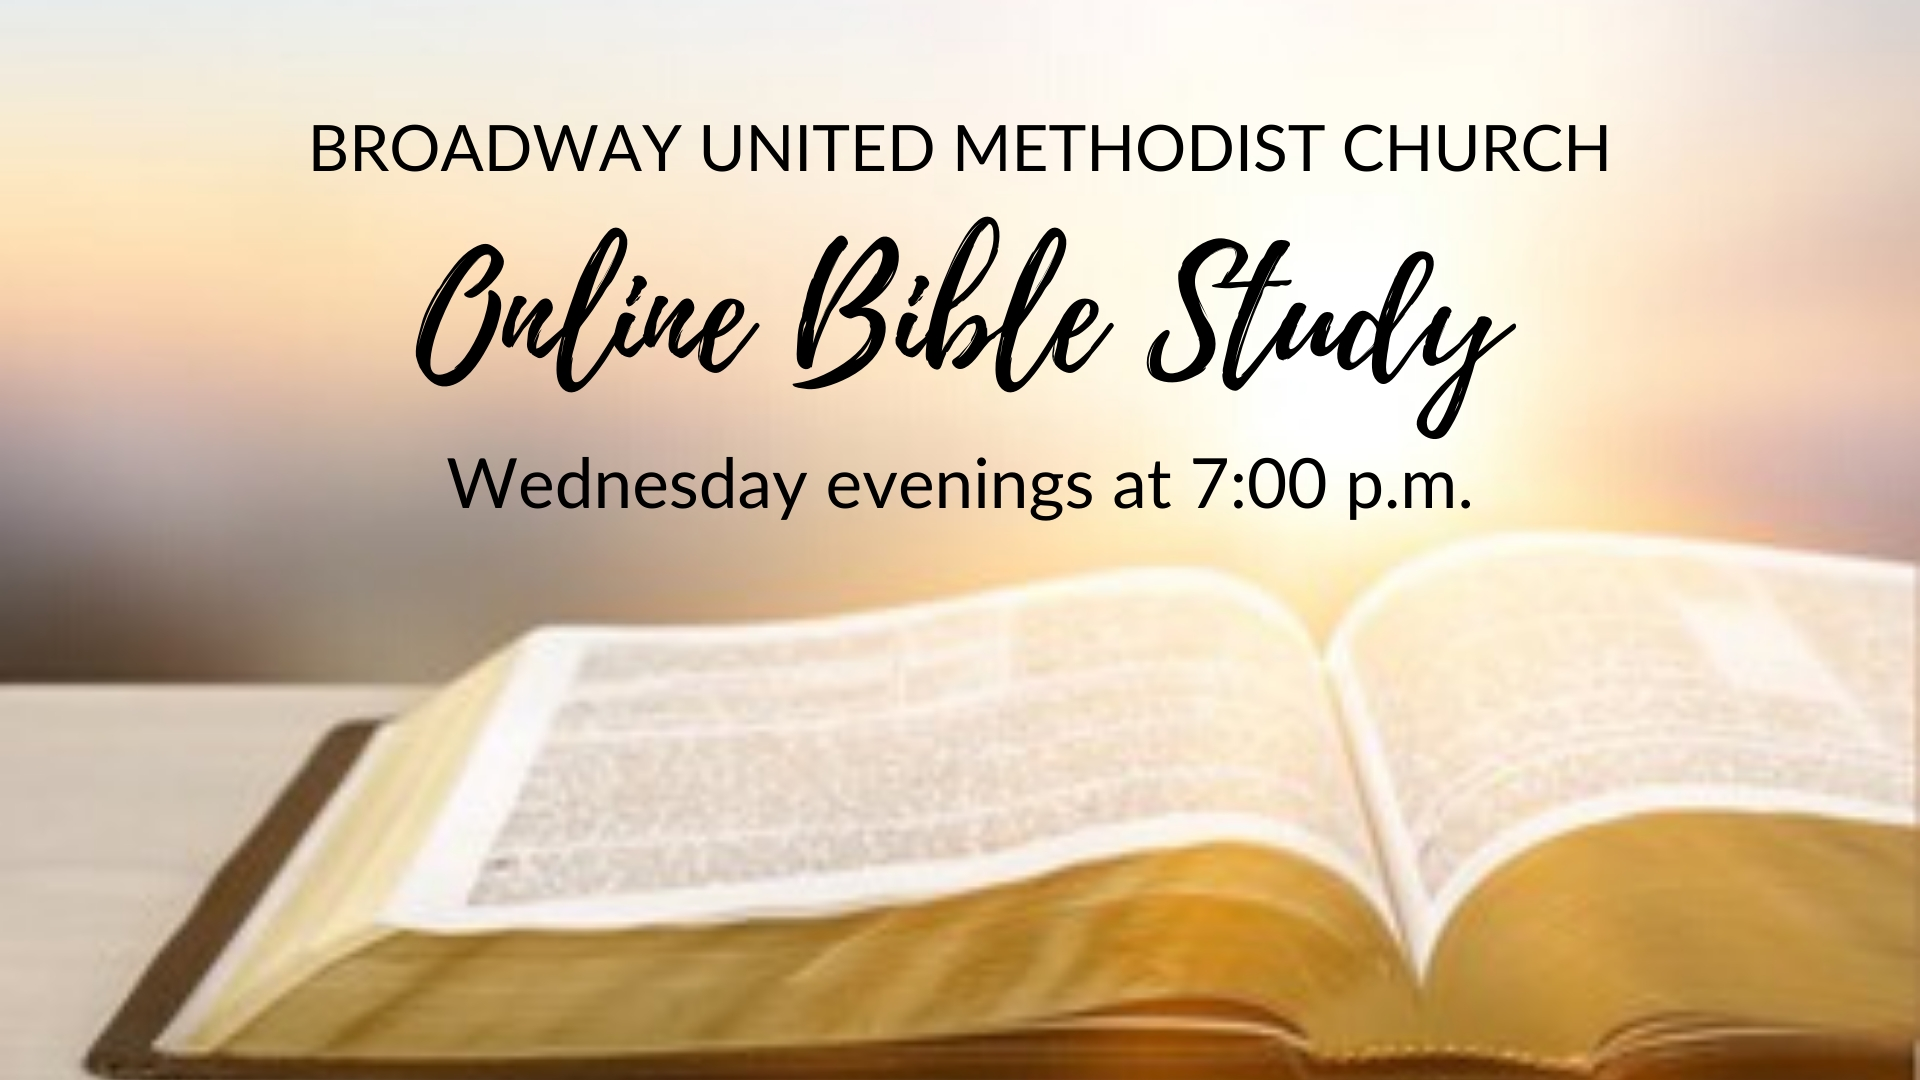 Events | Broadway United Methodist Church  Lectionary Reading Of Methodist For 2021